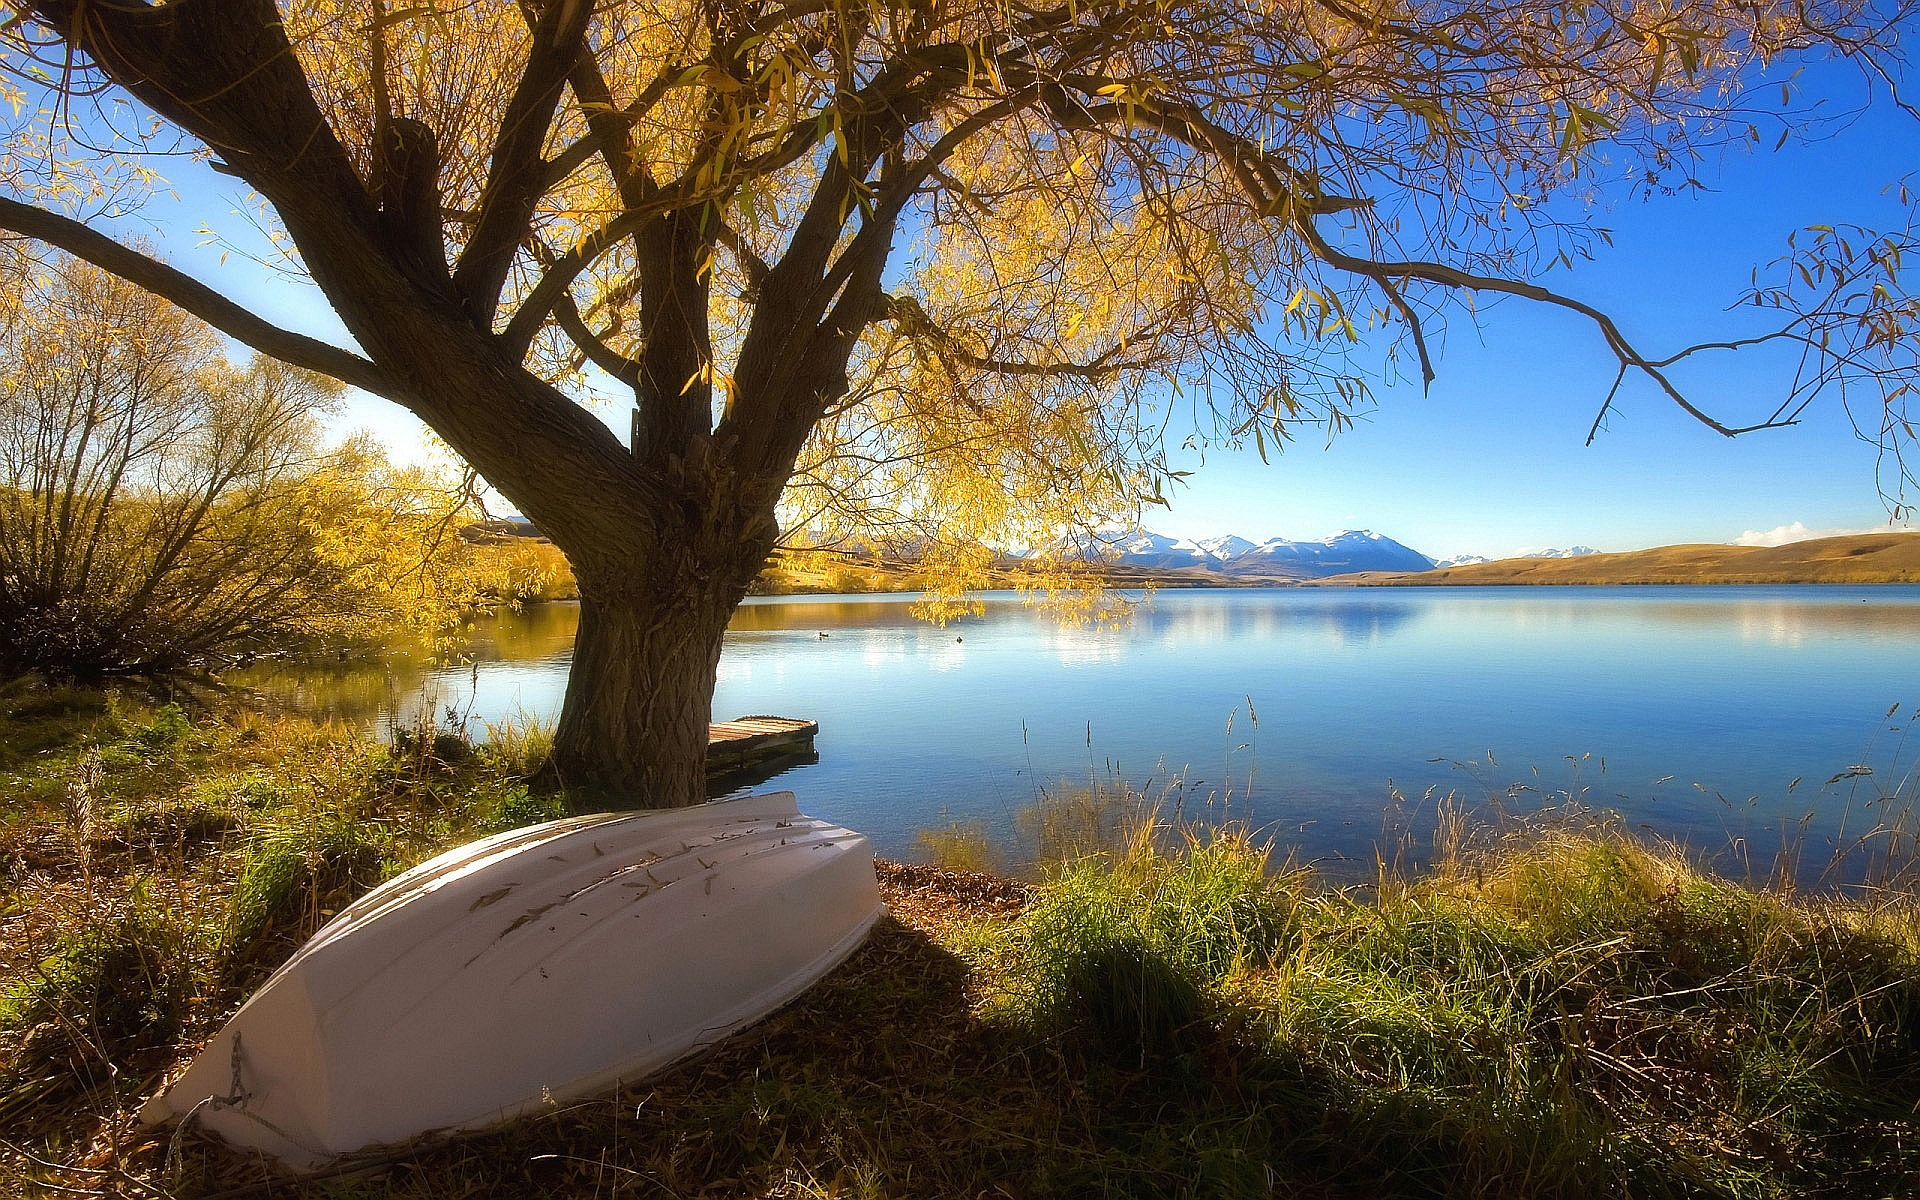 Lake Alexandrina New Zealand Wallpapers Pictures Photos Images. «